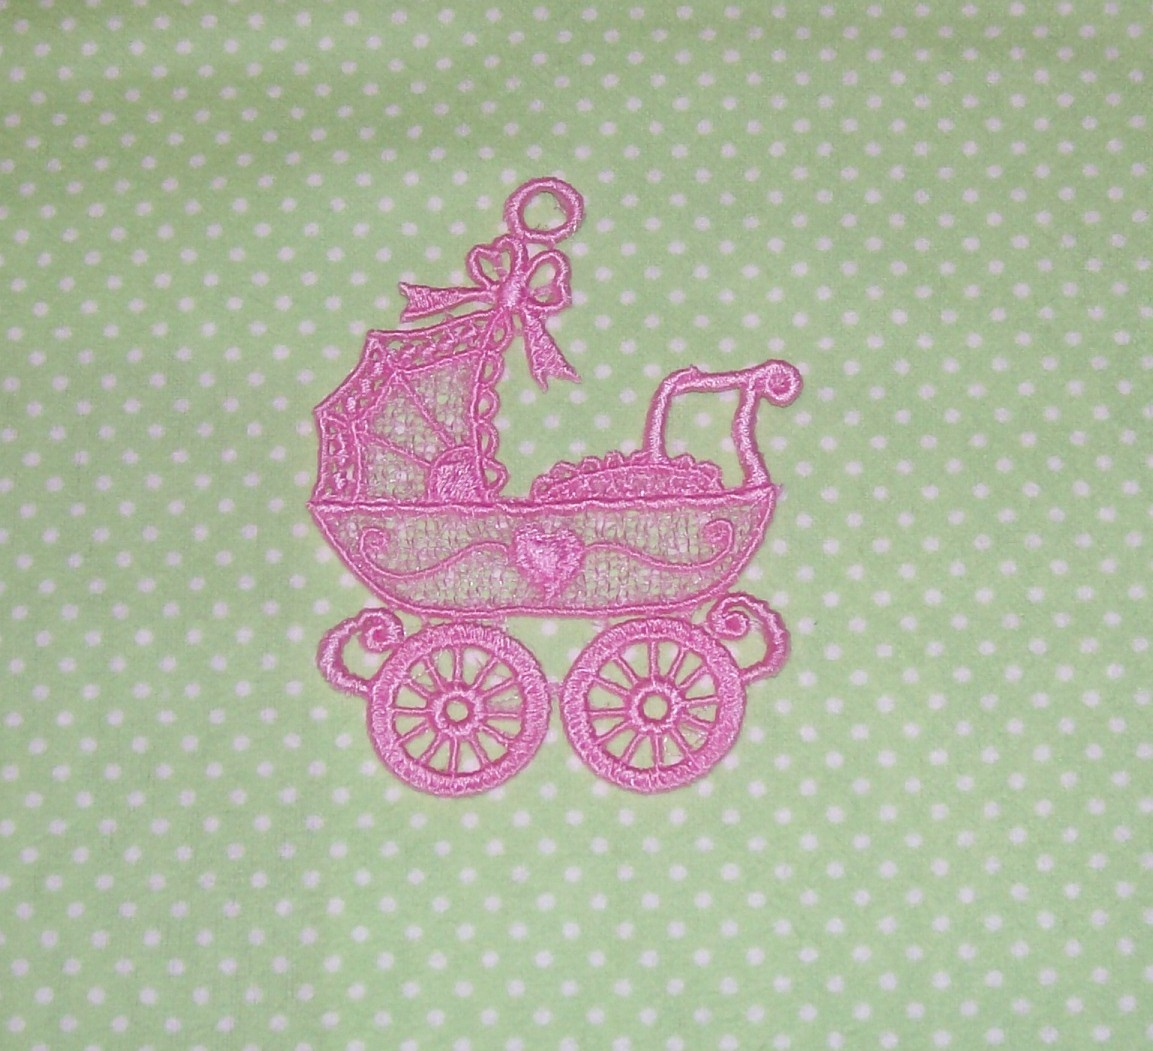 Free Embroidery Designs, Cute Embroidery Designs Cute Embroidery